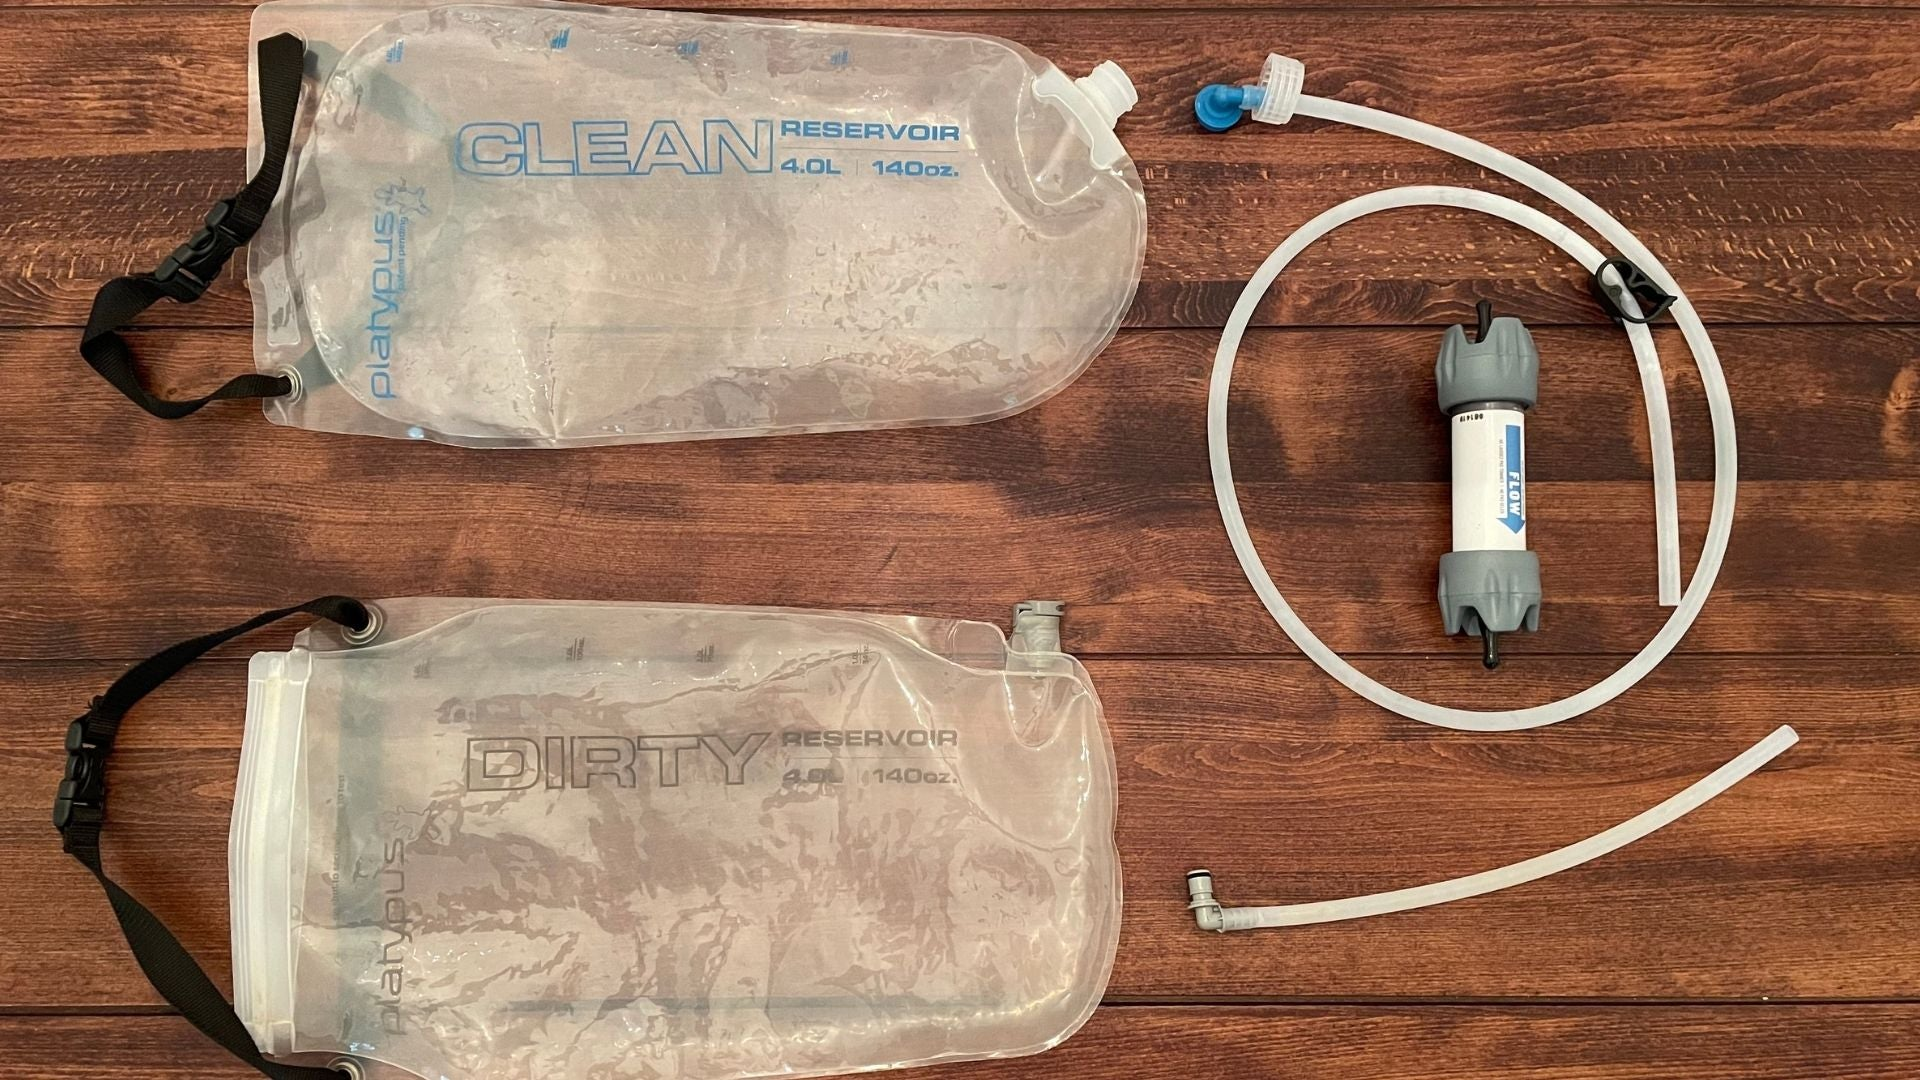 Platypus GravityWorks 4L water filter